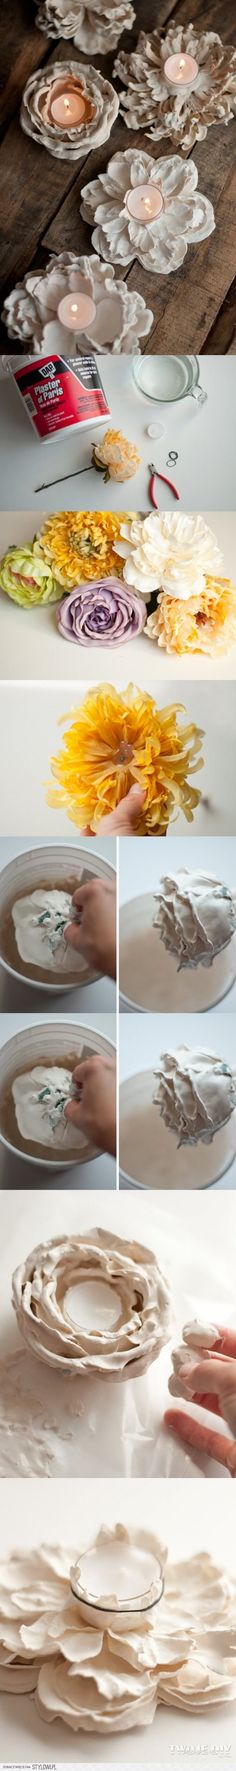 Beautiful DIY Candle Holders – Great Ideas & Tutorials for Special Occasions DIY Romantic Plaster Dipped Flower Votives. I can't believe how easy it is to make these beautiful flower votives at home. Tutorial via Diy Home Decor Projects, Diy Projects To Try, Crafts To Do, Craft Projects, Arts And Crafts, Decor Crafts, Diy Candle Holders, Diy Candles, Beeswax Candles